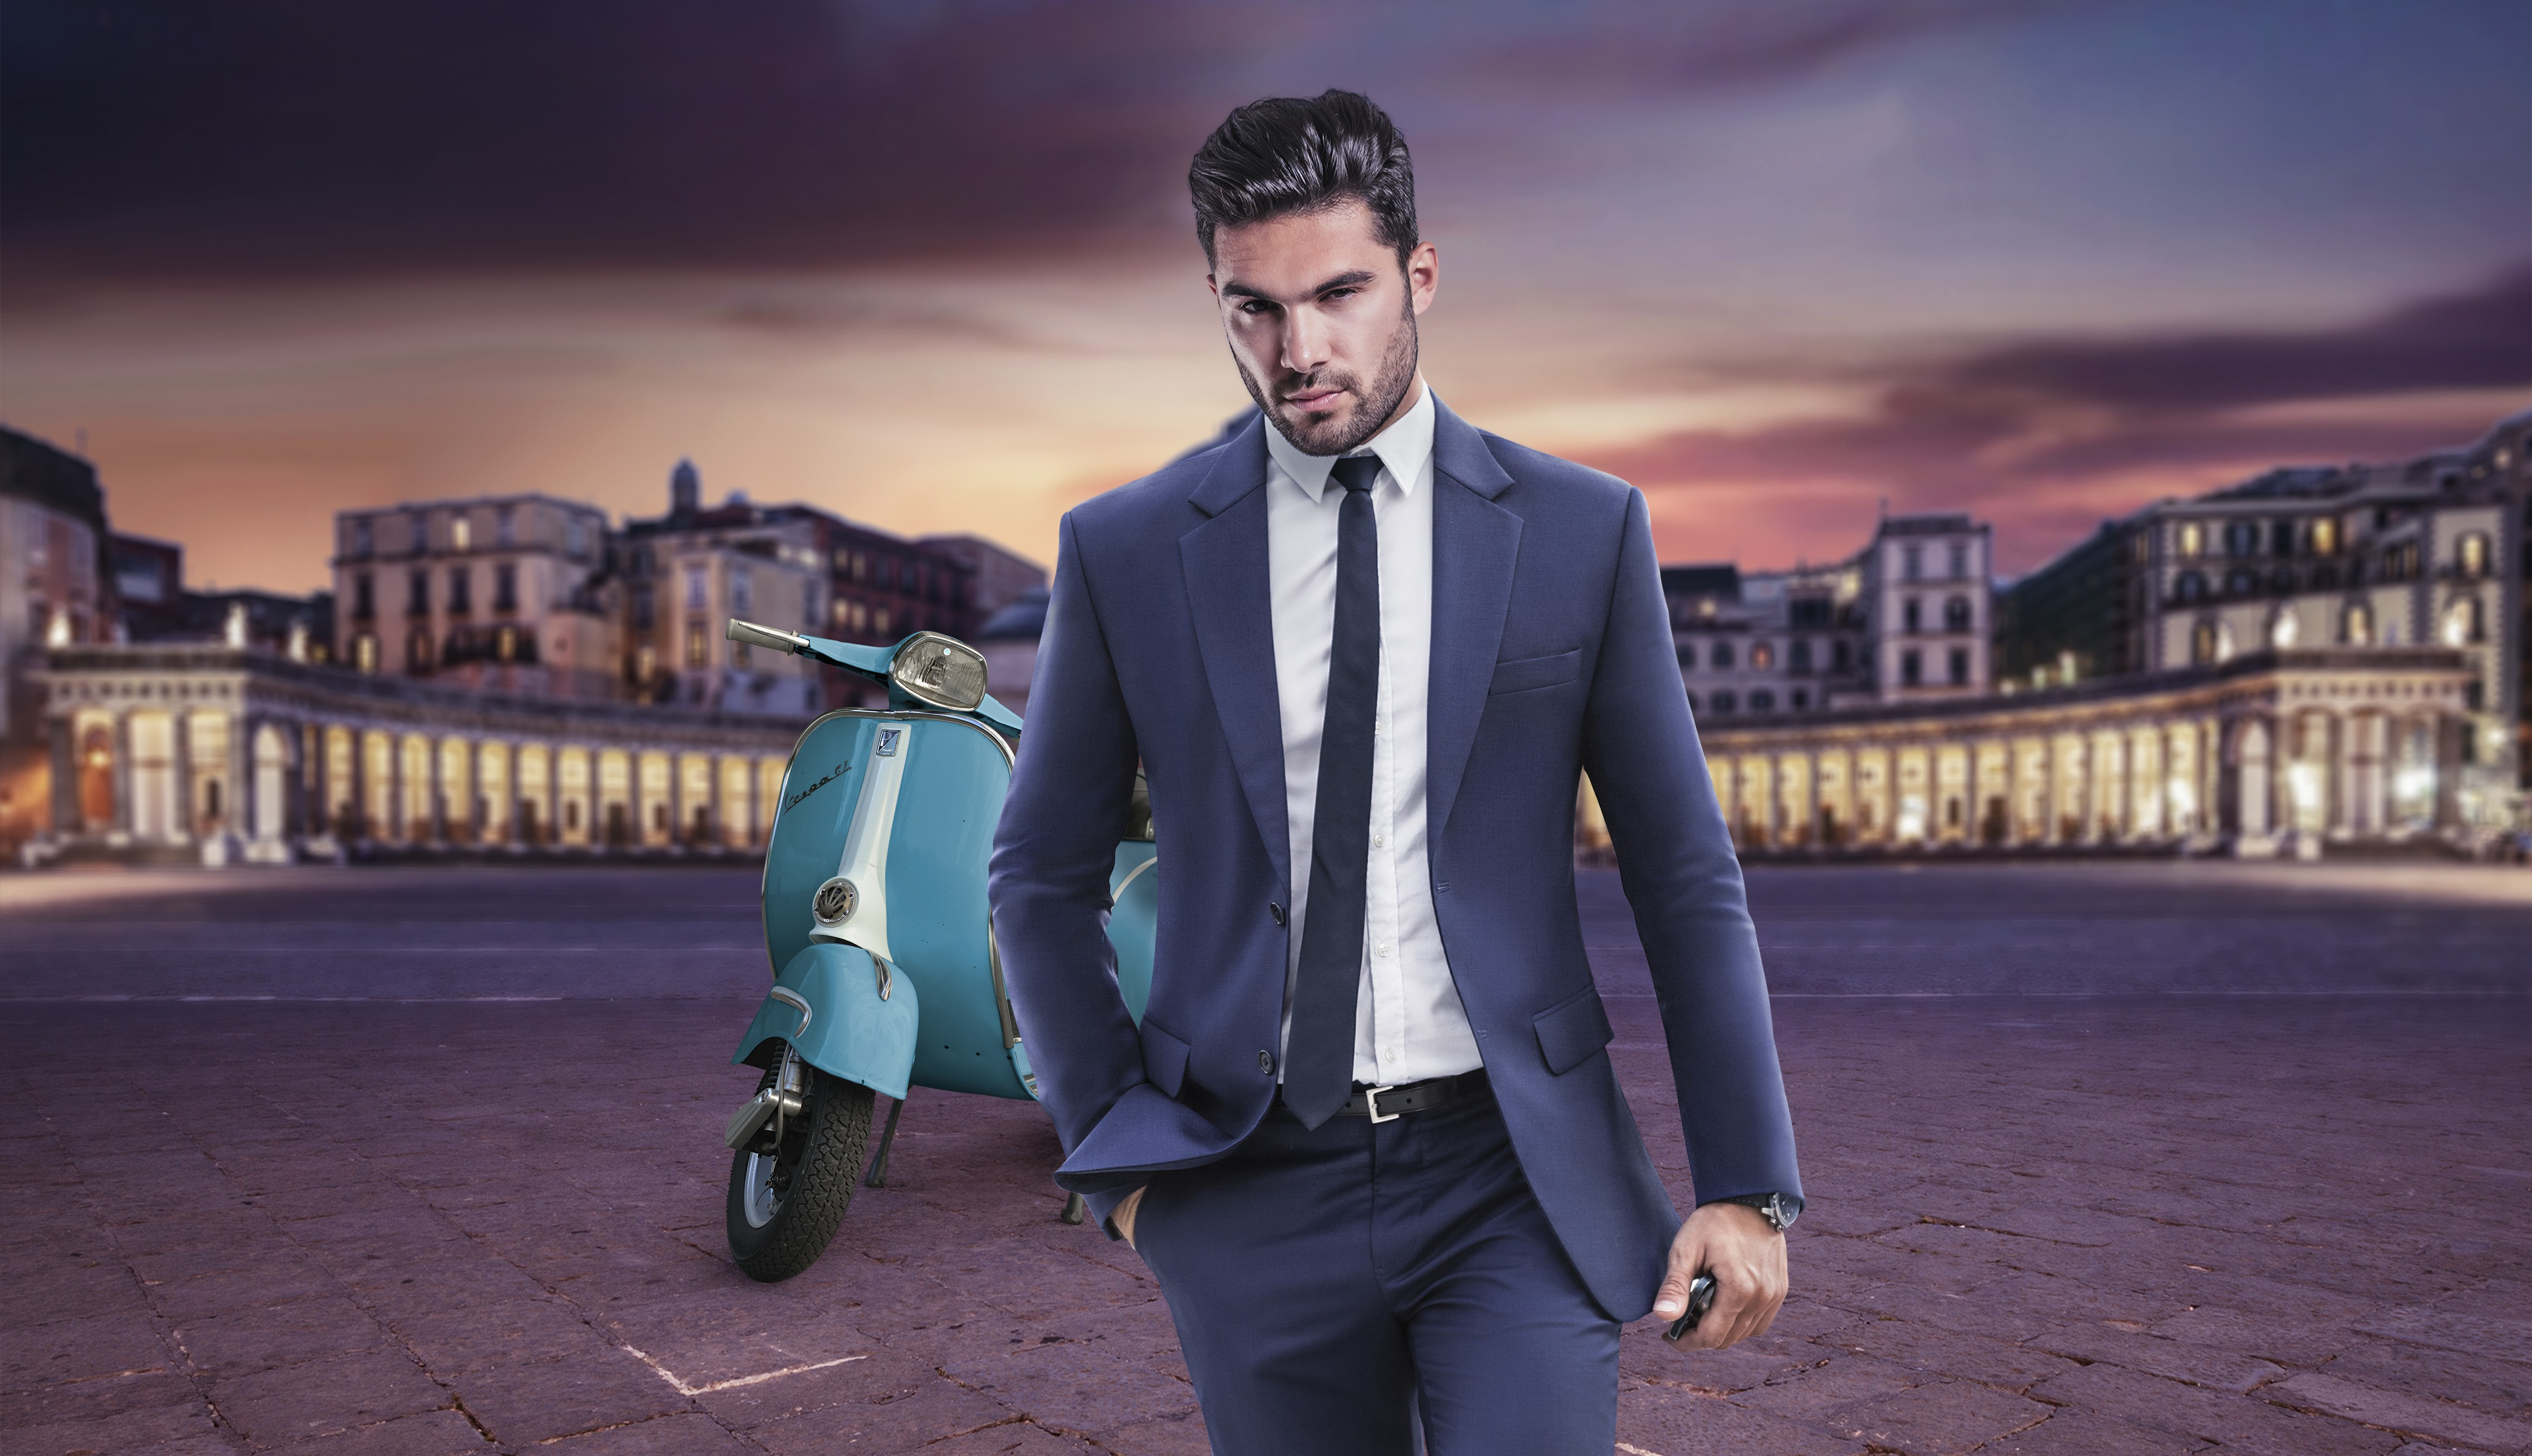 I&S Costume italien: Make The Man